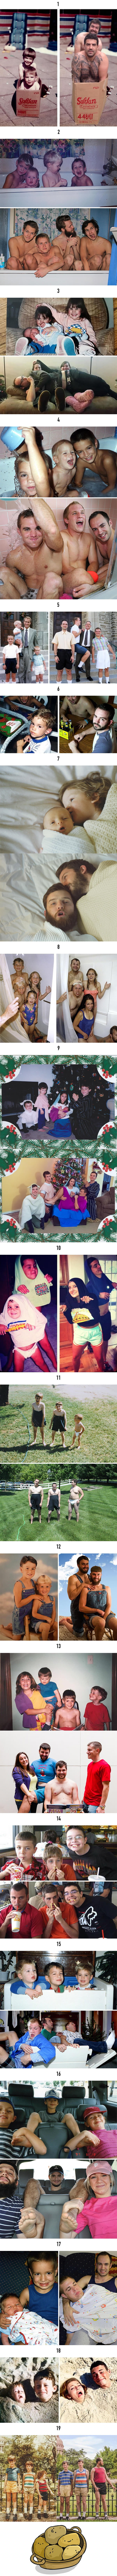 19 Times Siblings Masterfully Recreated Their Childhood Photos